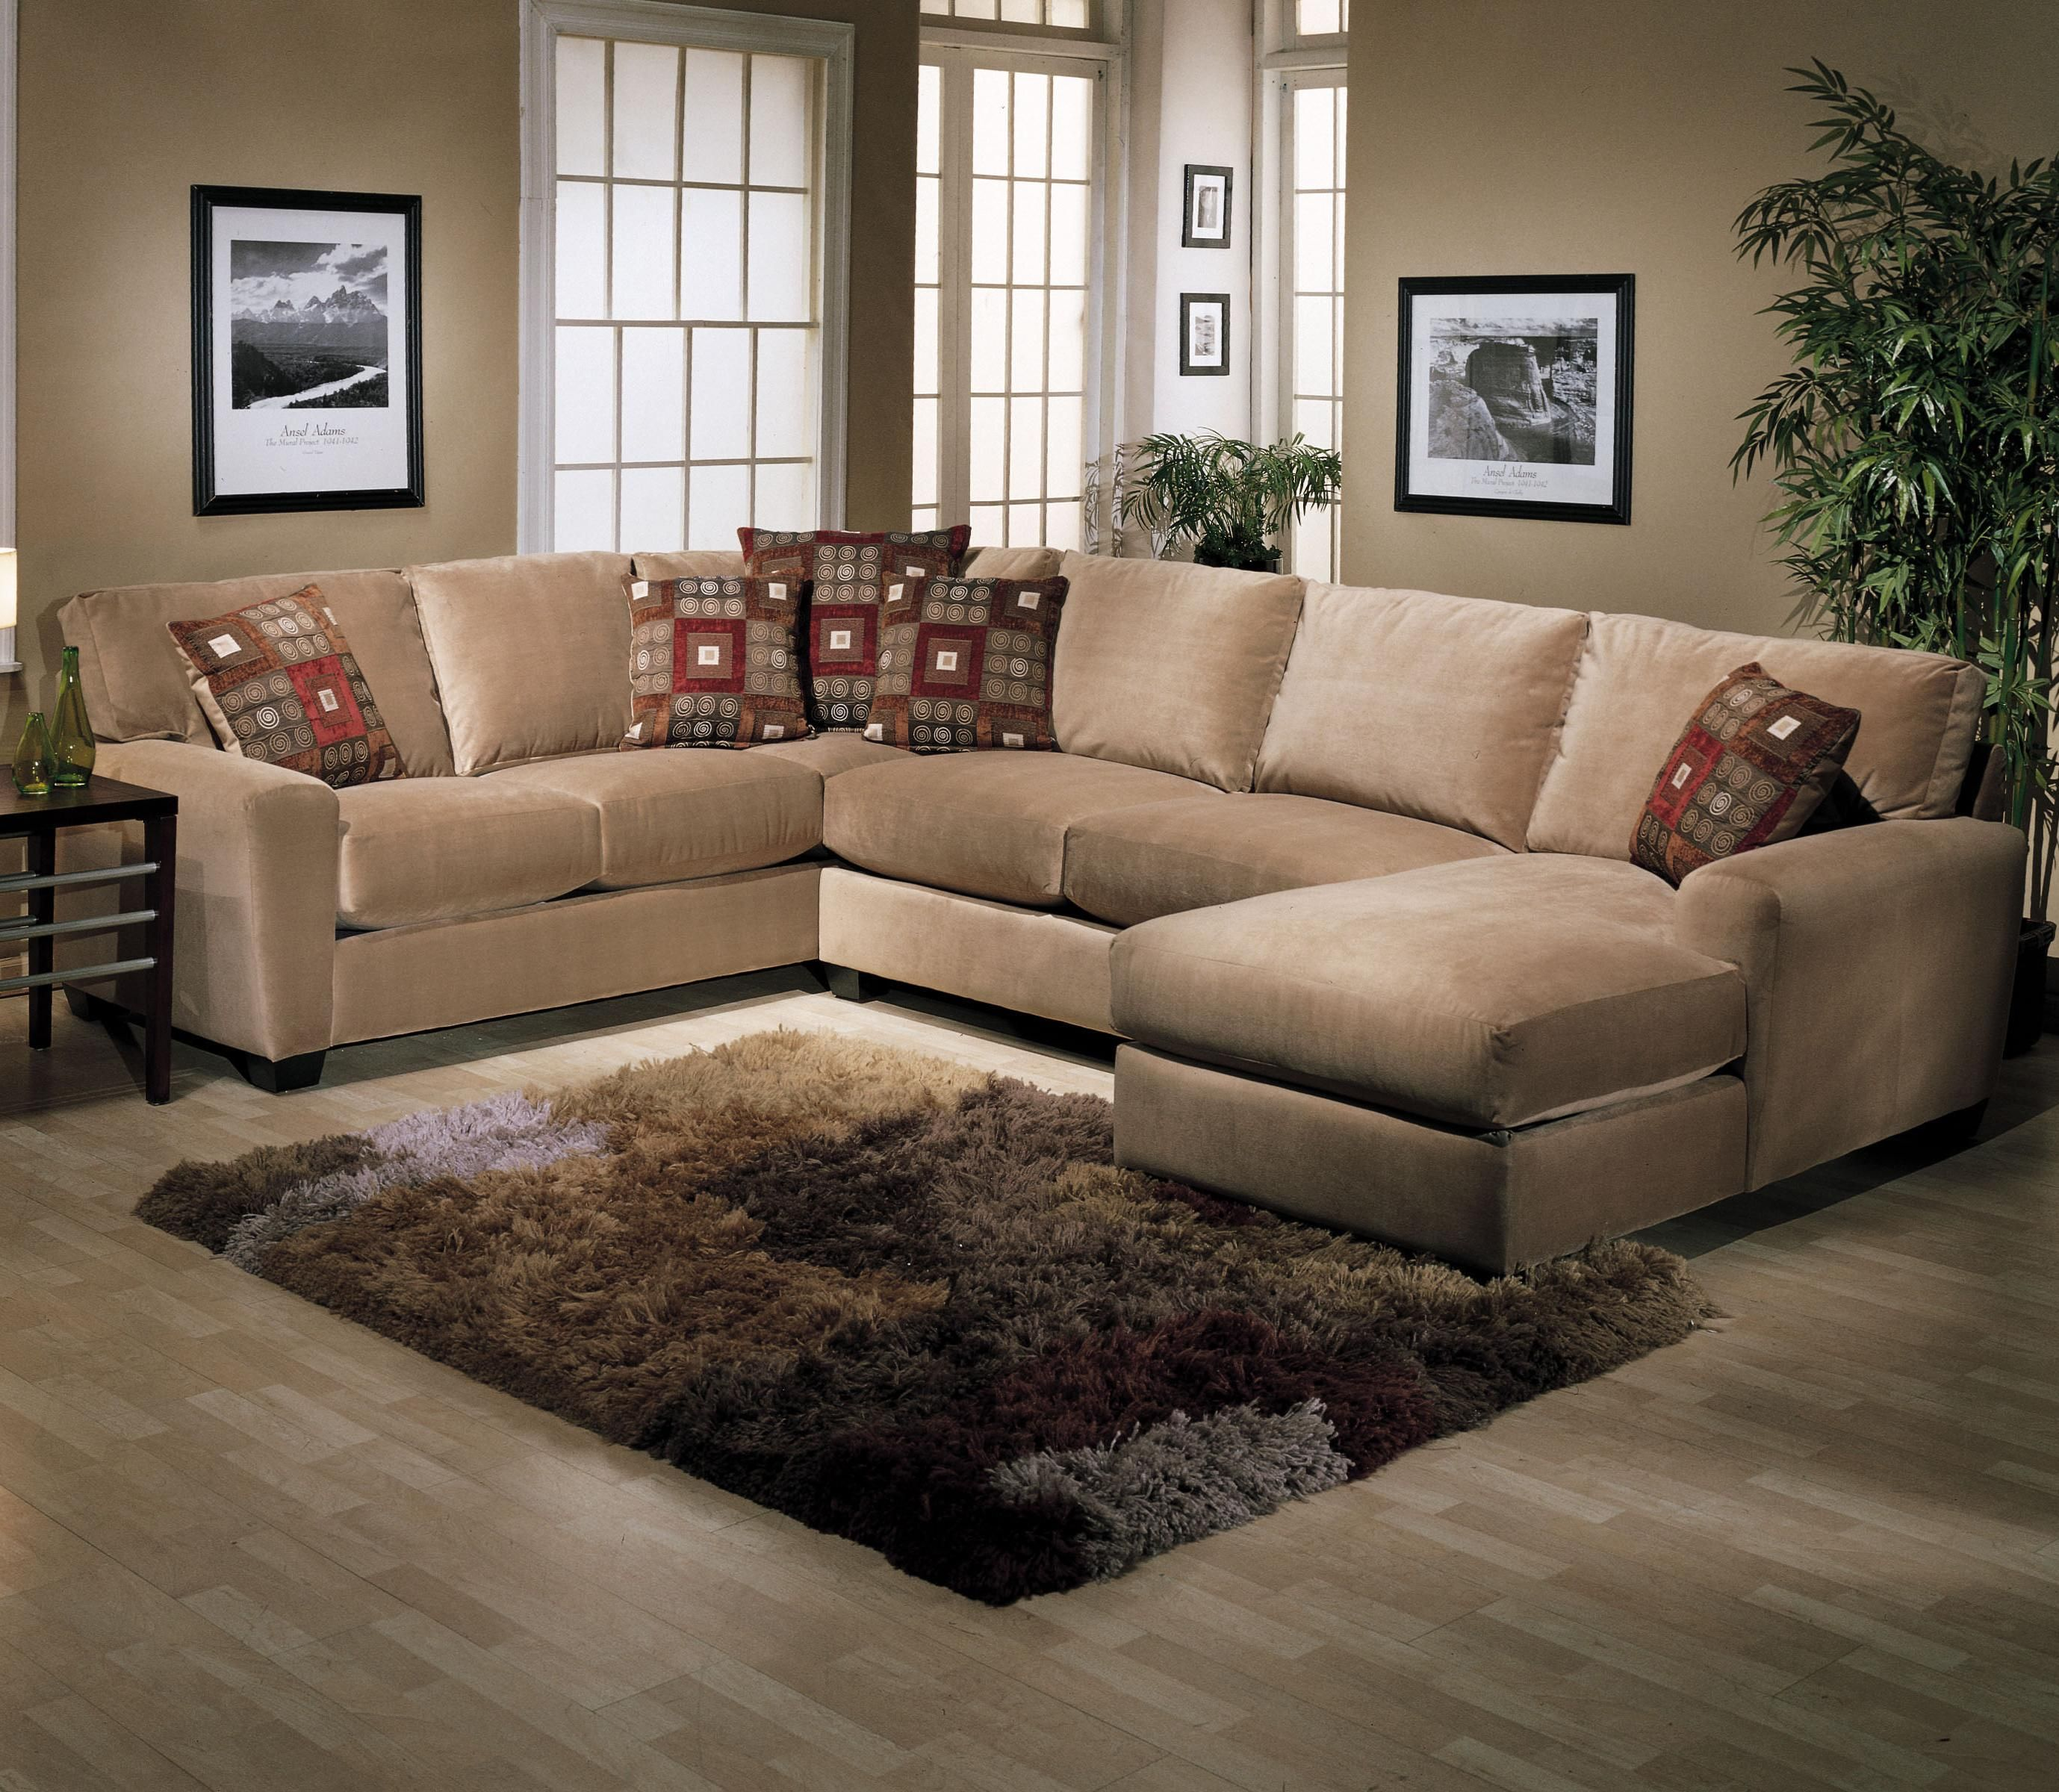 U Shaped Couch Living Room Furniture Becks Furniture Benson L Shape Sectional With Chaise Lounge By